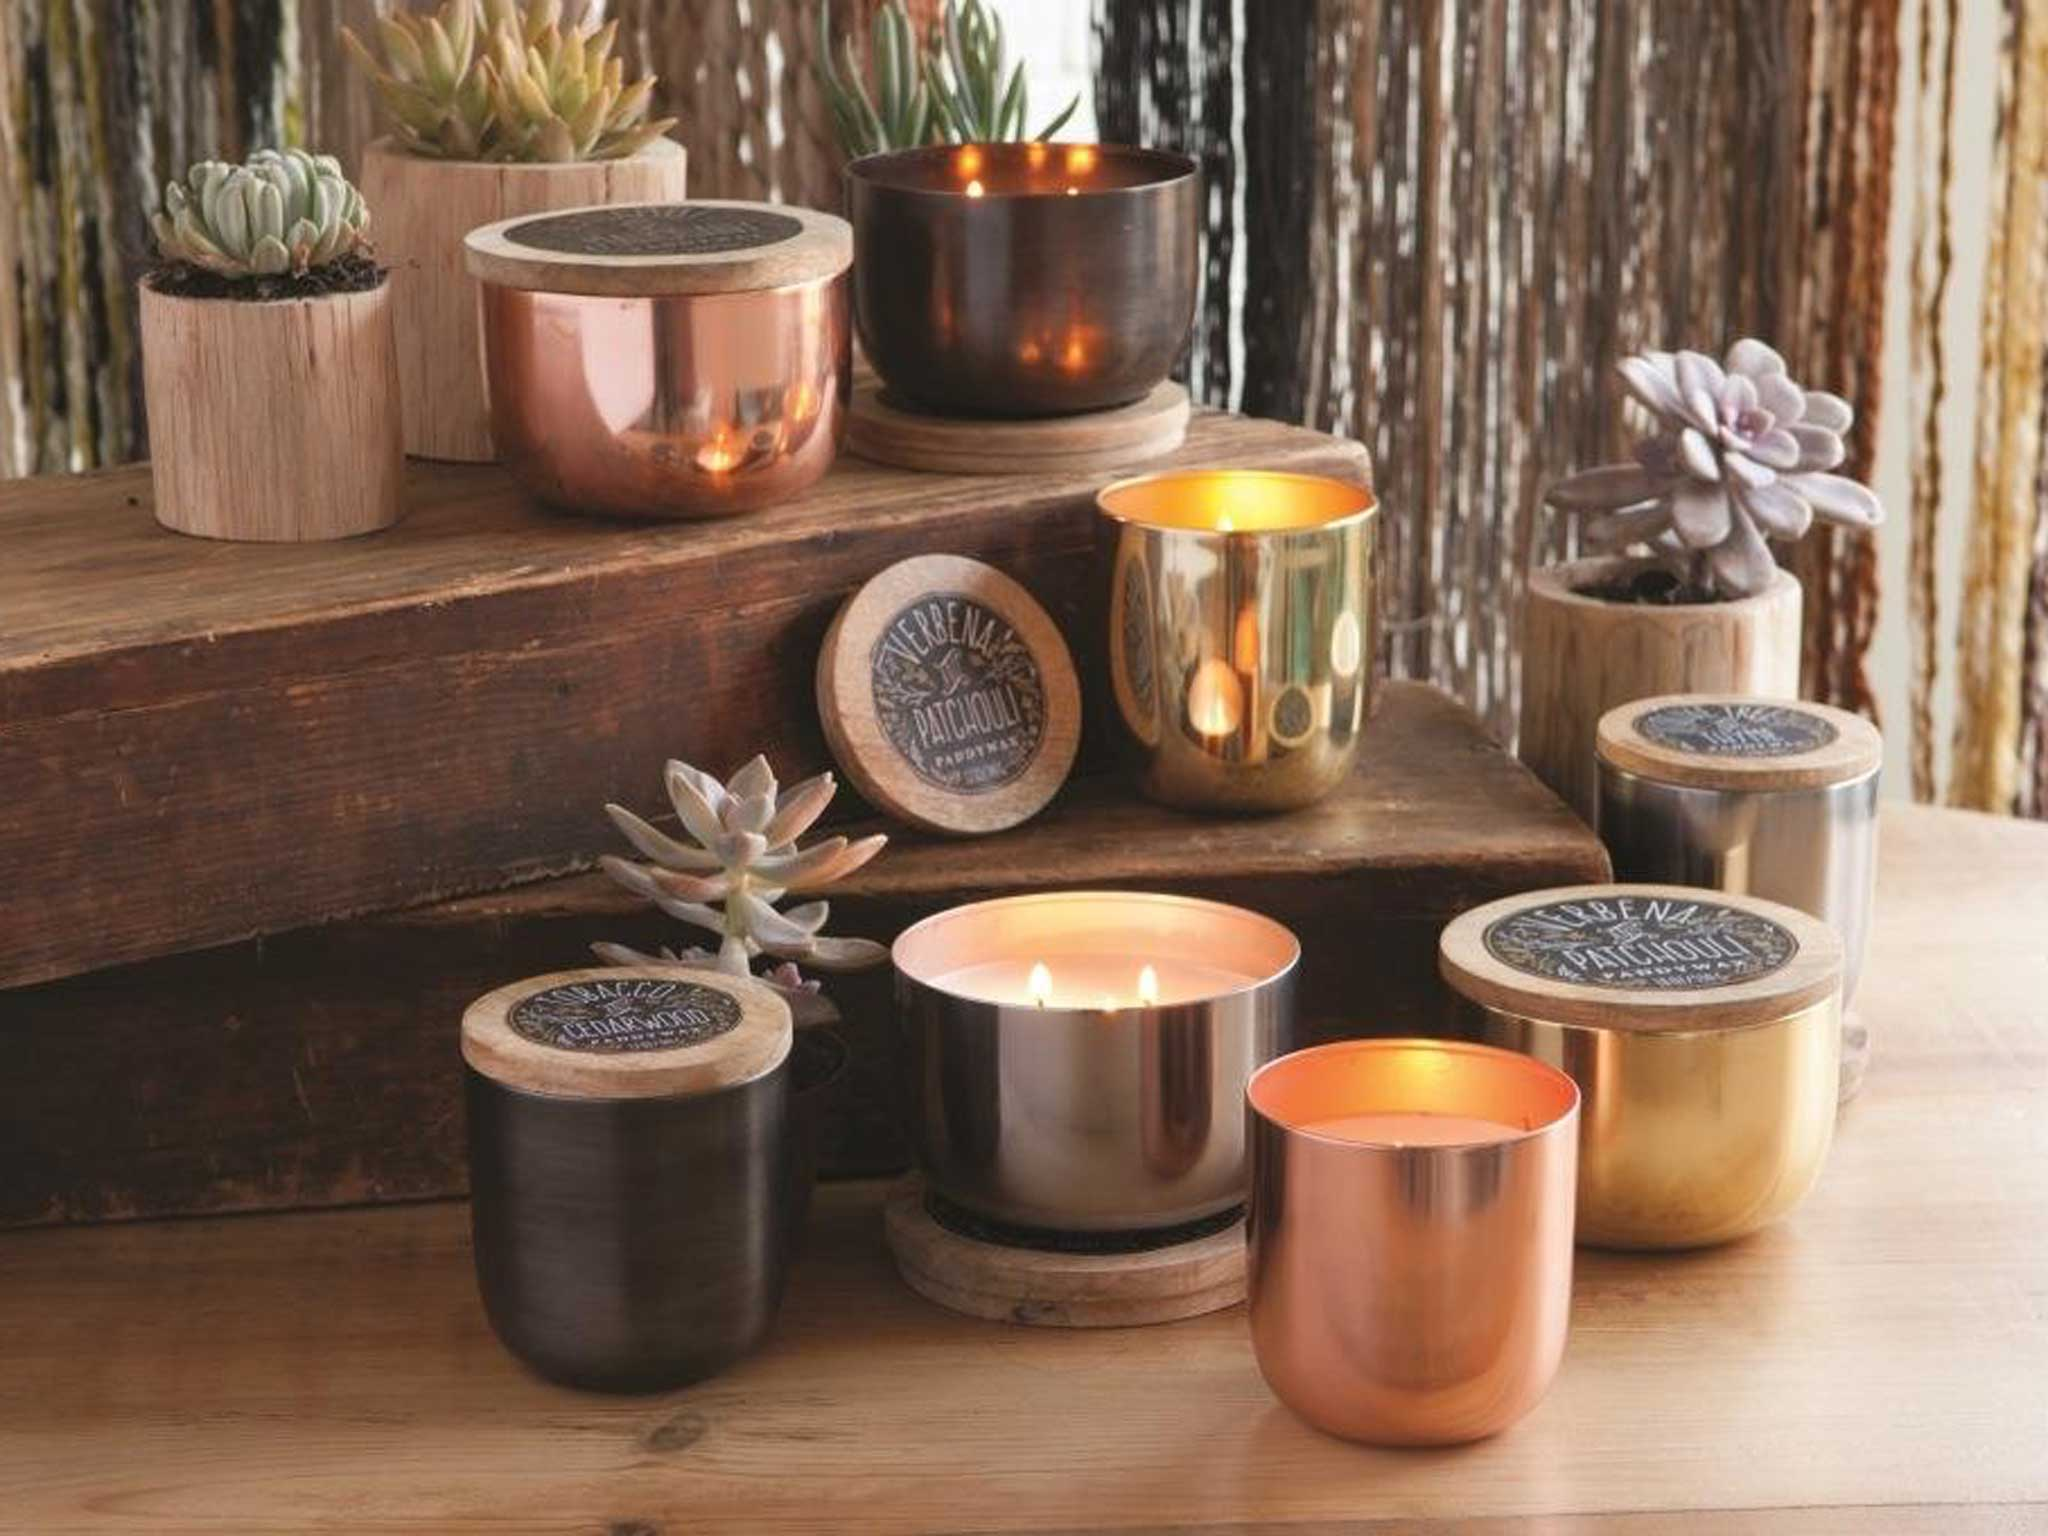 8 Best Scented Candles The Independent